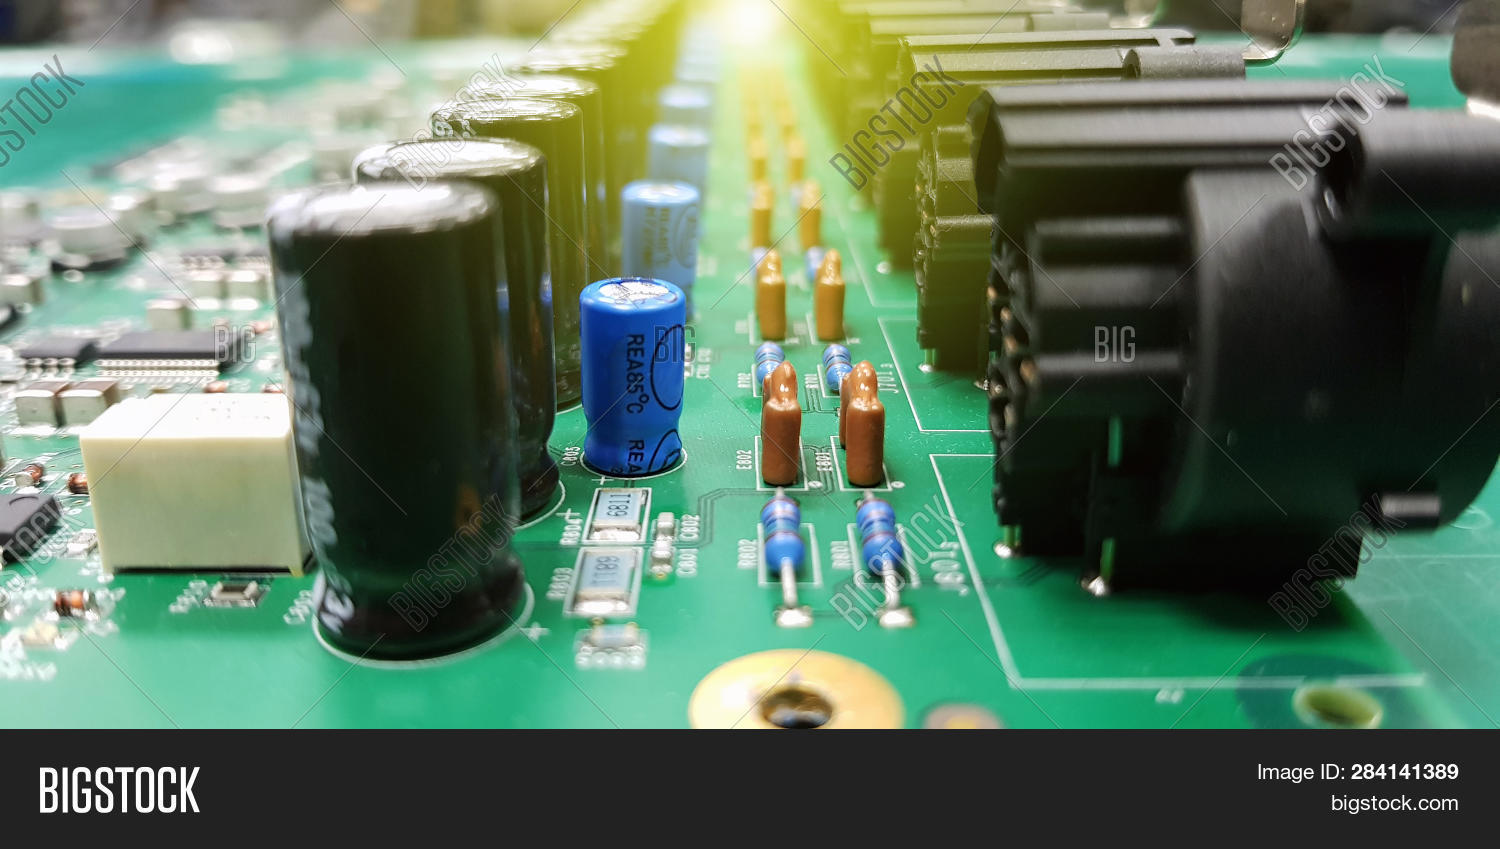 background,blue,board,capacitor,card,chip,circuit,circuitry,communication,compact,component,computer,computing,connection,connectivity,detail,digital,electric,electricity,electronic,elements,engineer,engineering,fuse,green,hardware,industrial,industry,integrated,laboratory,manufacturing,microchip,microcomputer,microprocessor,modern,network,pcb,phone,printed,processor,production,resistance,resistor,science,semiconductor,small,socket,solder,technology,transistor